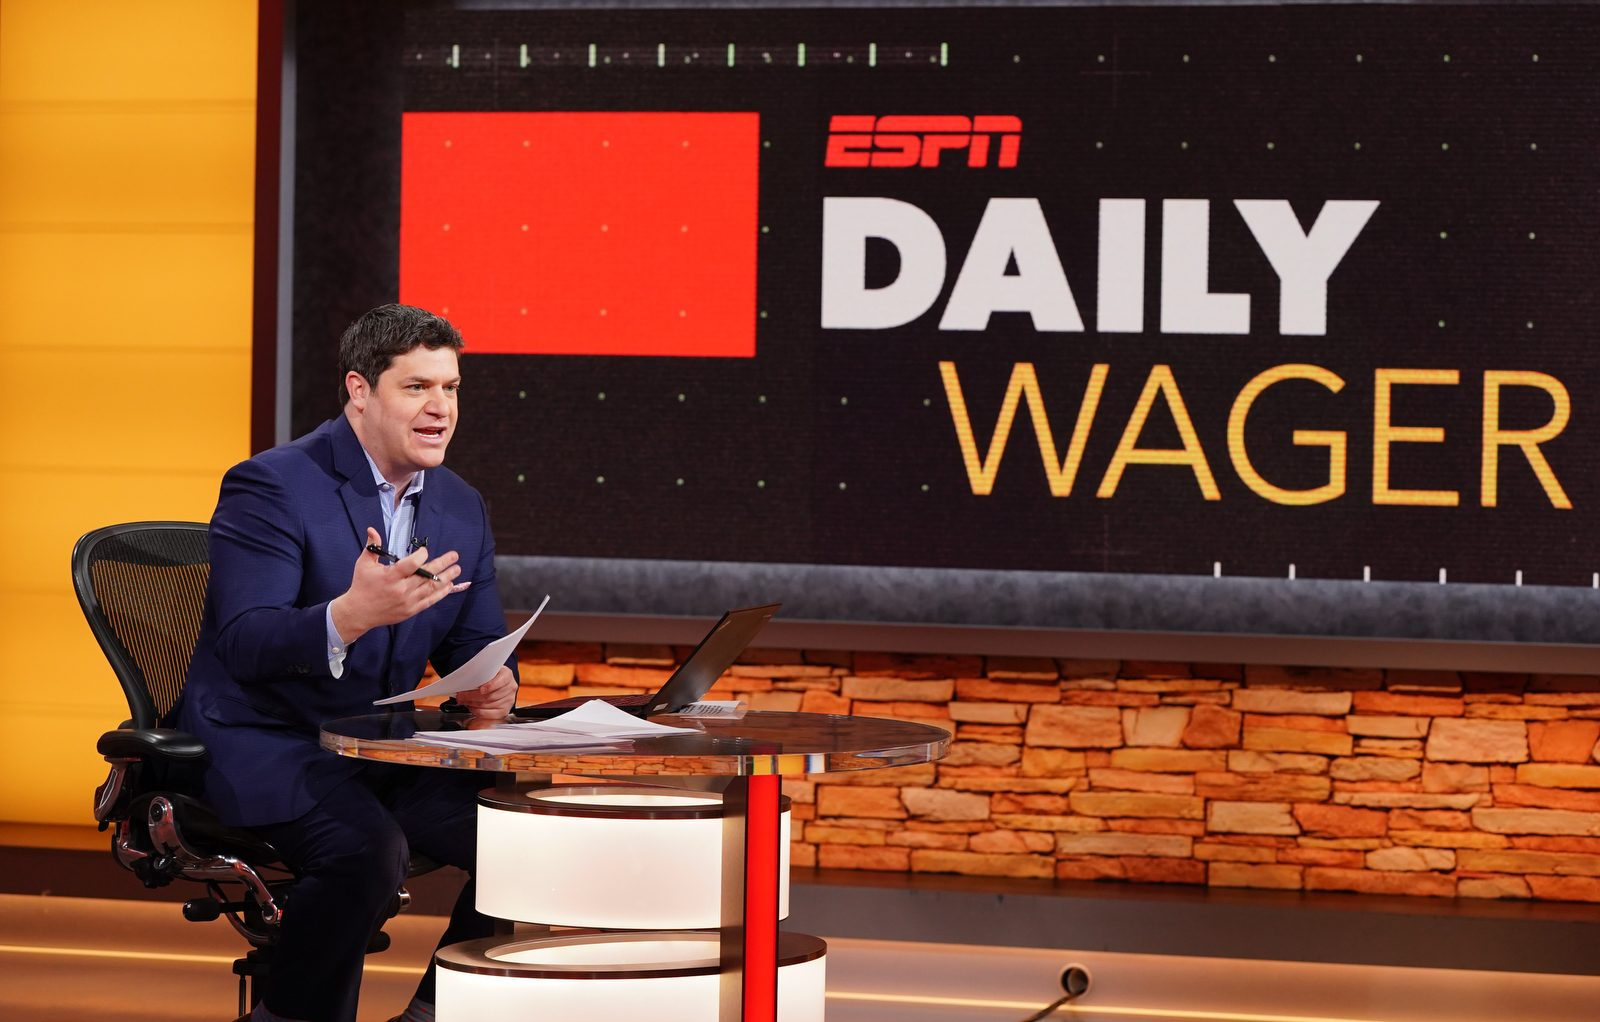 Daily Wager ESPN